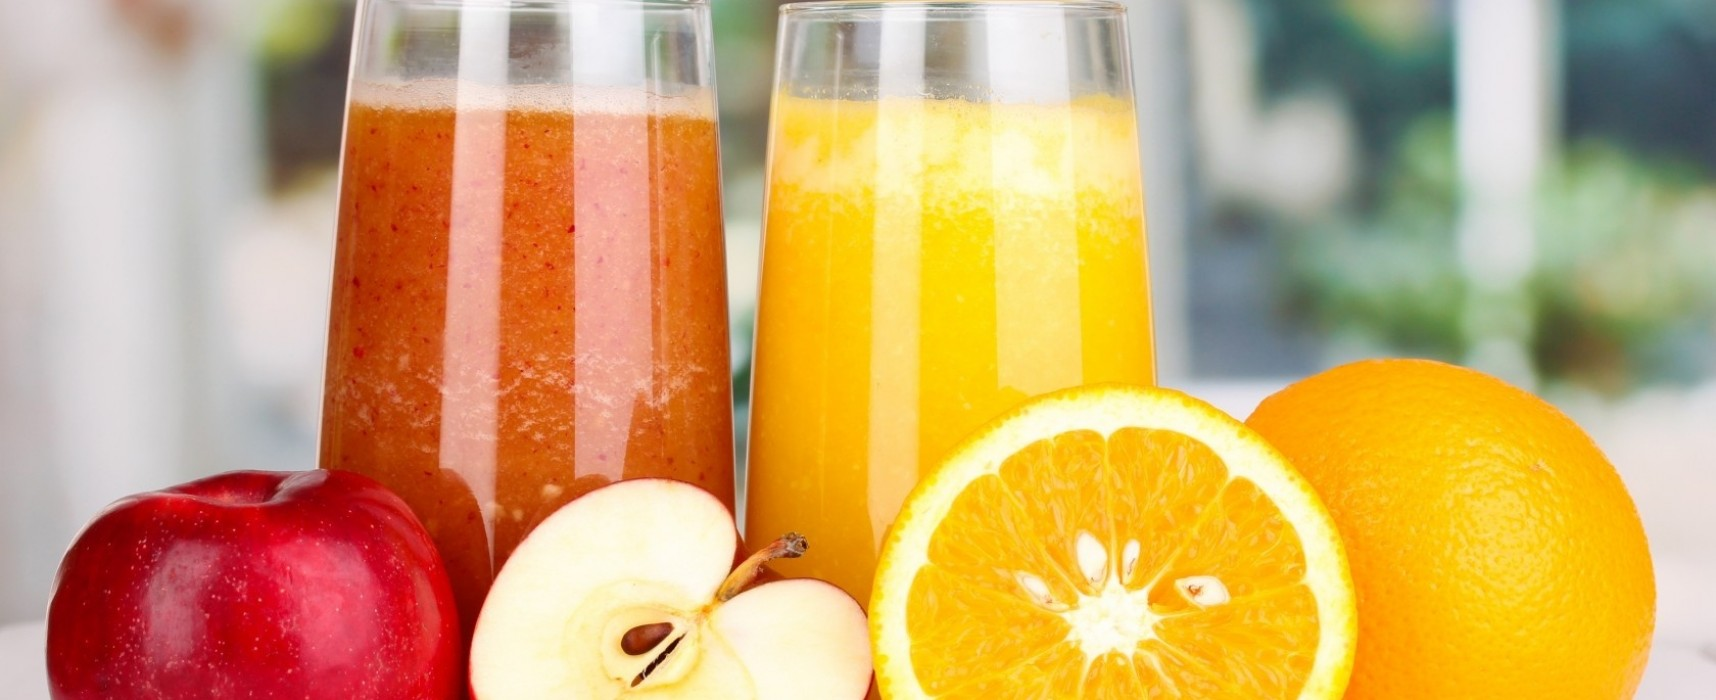 Why are juices turning out to be unhealthy?